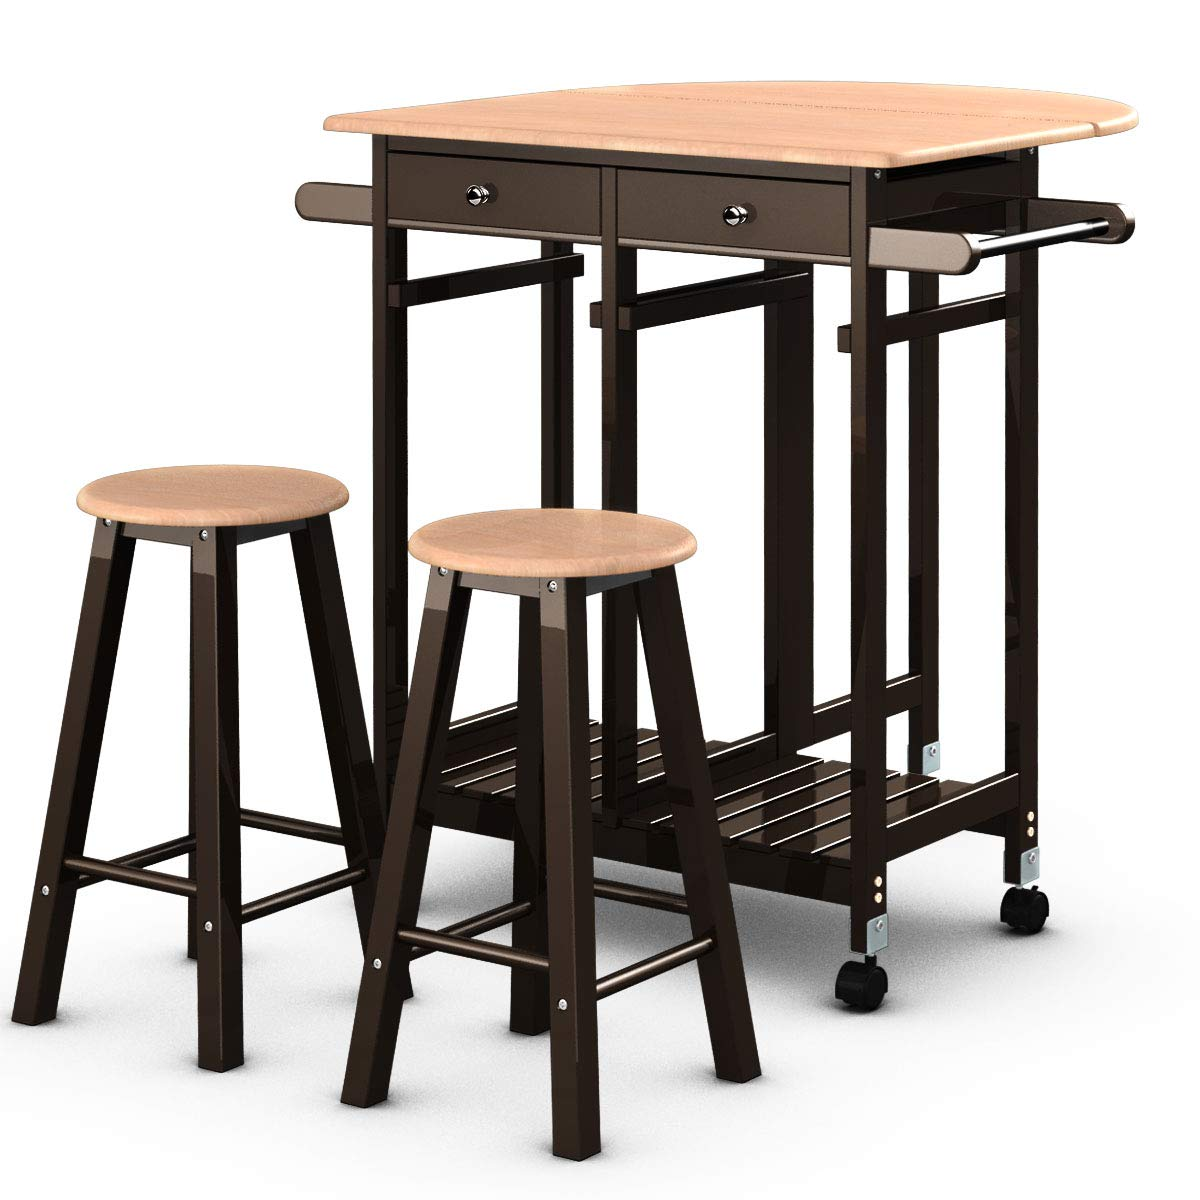 Giantex 3PCS Wood Kitchen Rolling Casters Fold Table Drop Leaf 2 Drawers with 2 Stools by Giantex